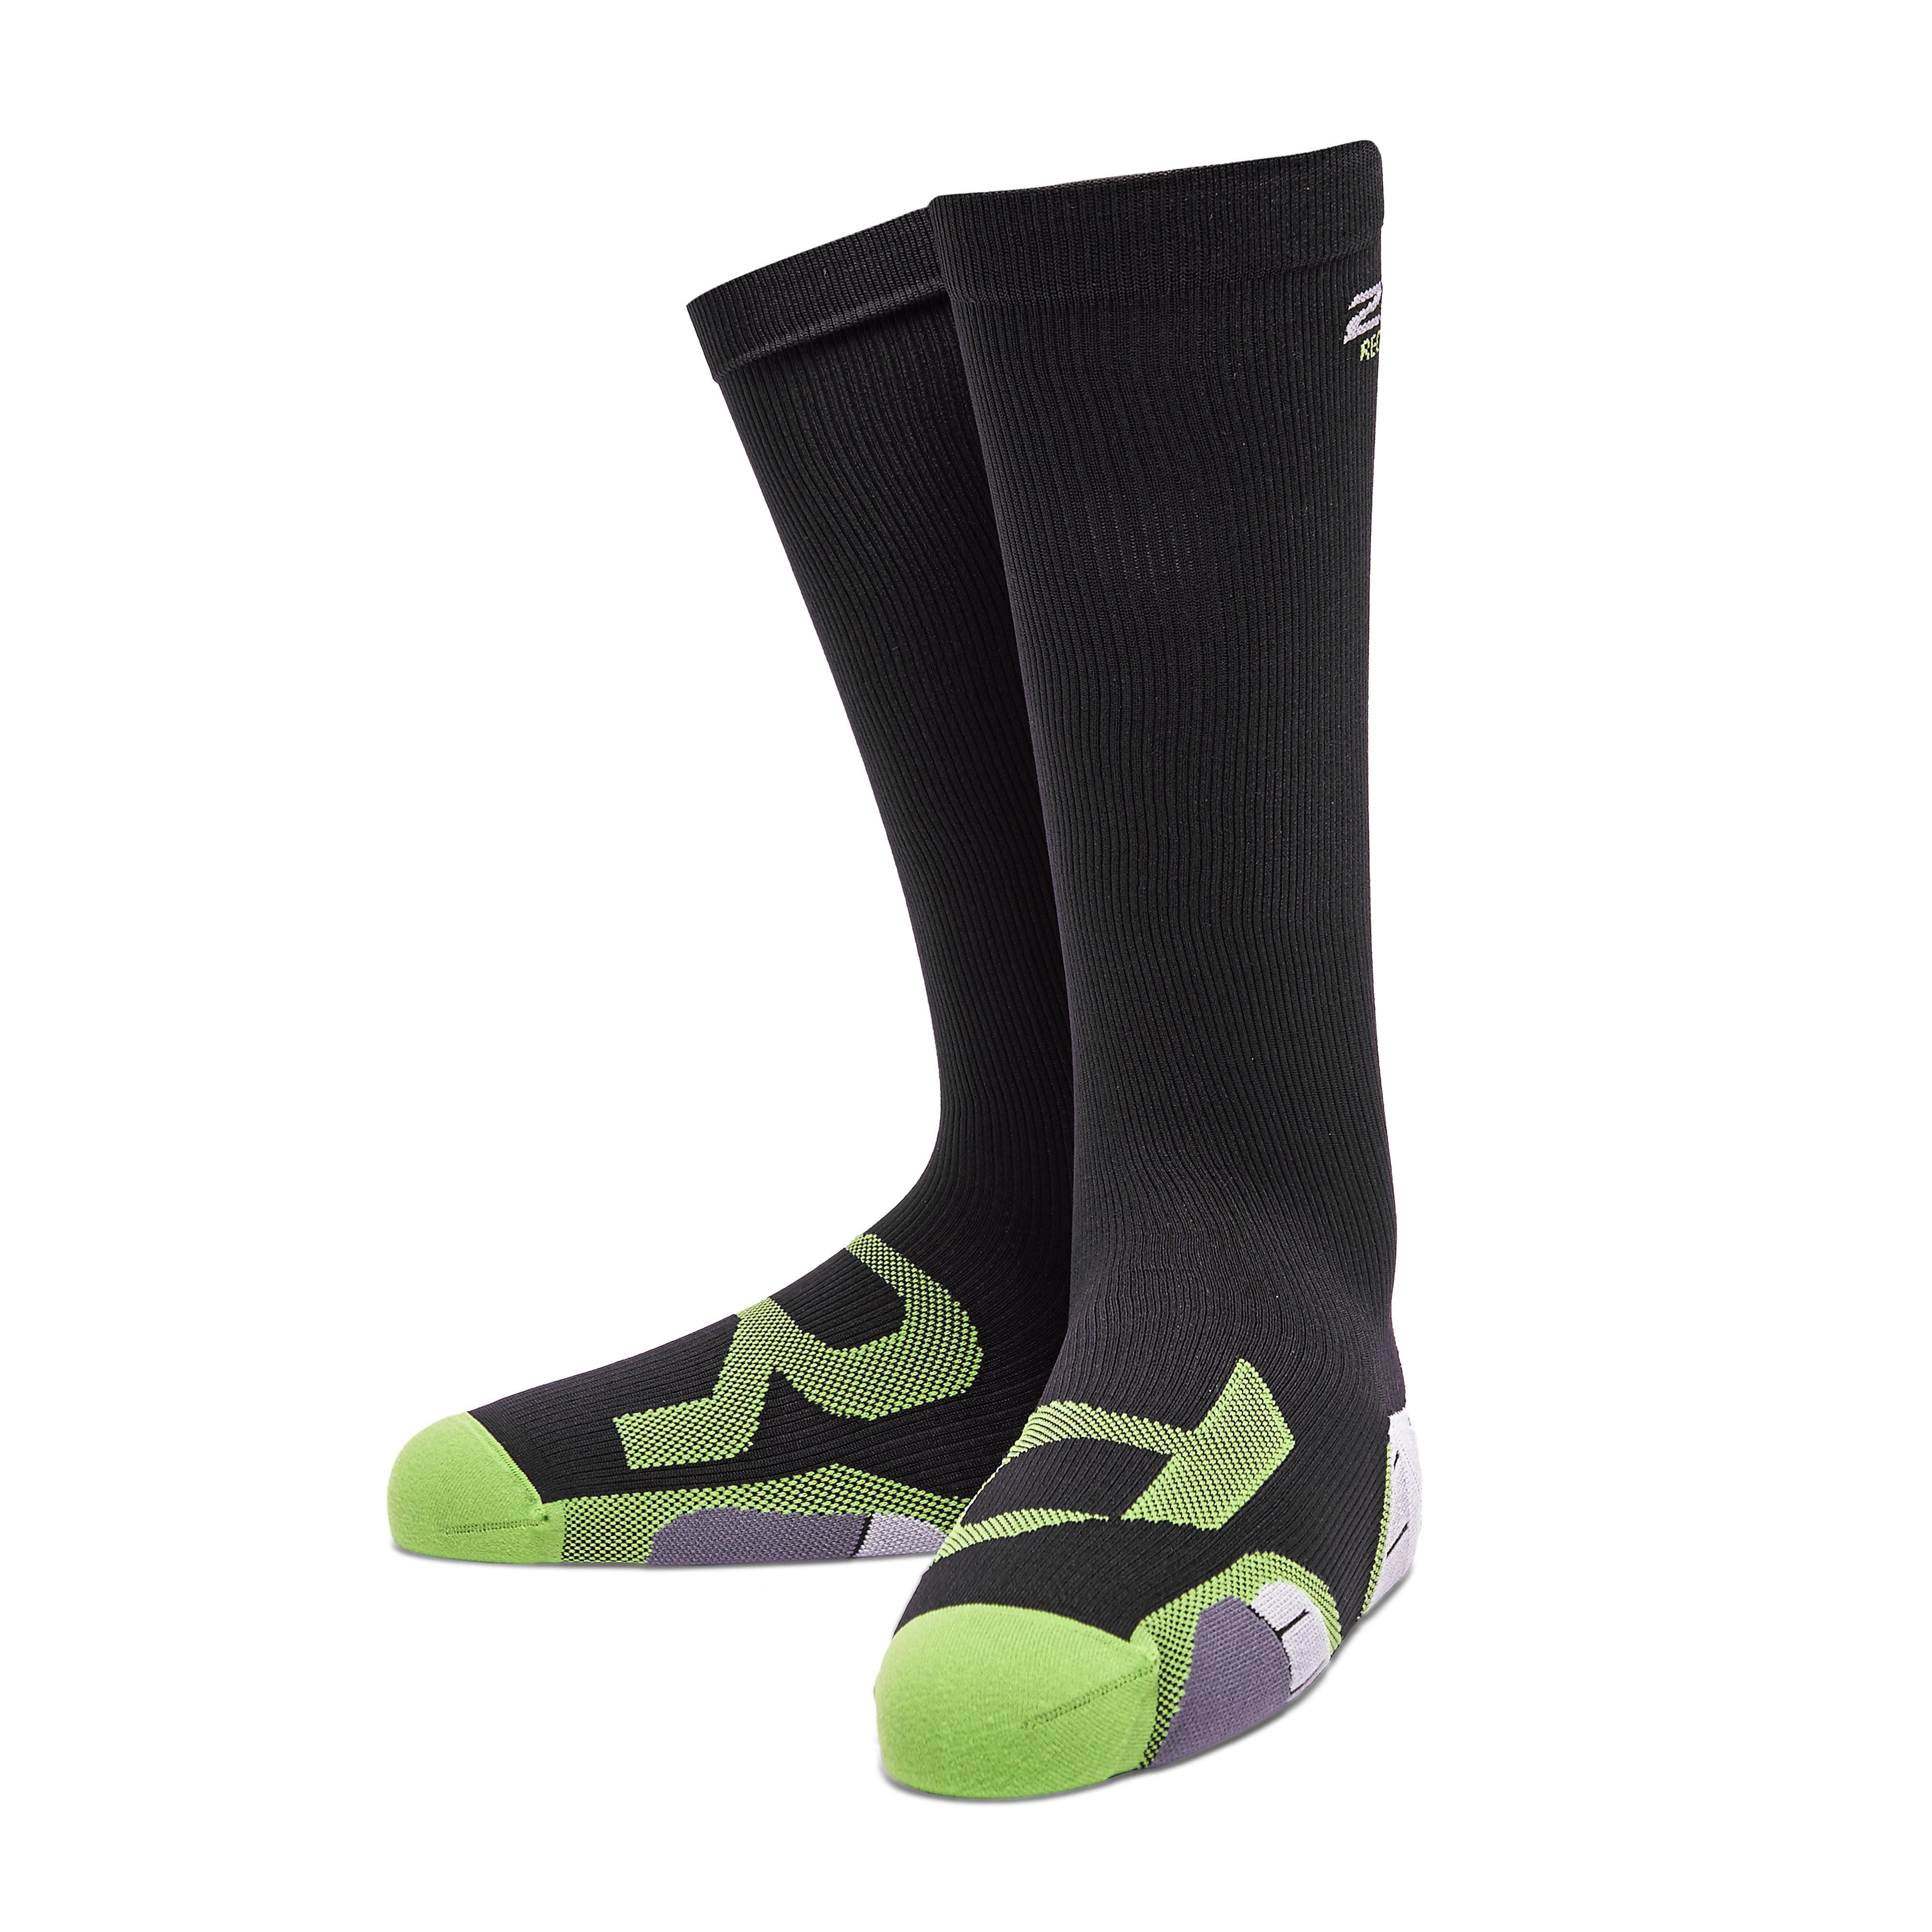 2XU 1 Pair Women's Compression Socks for Recovery